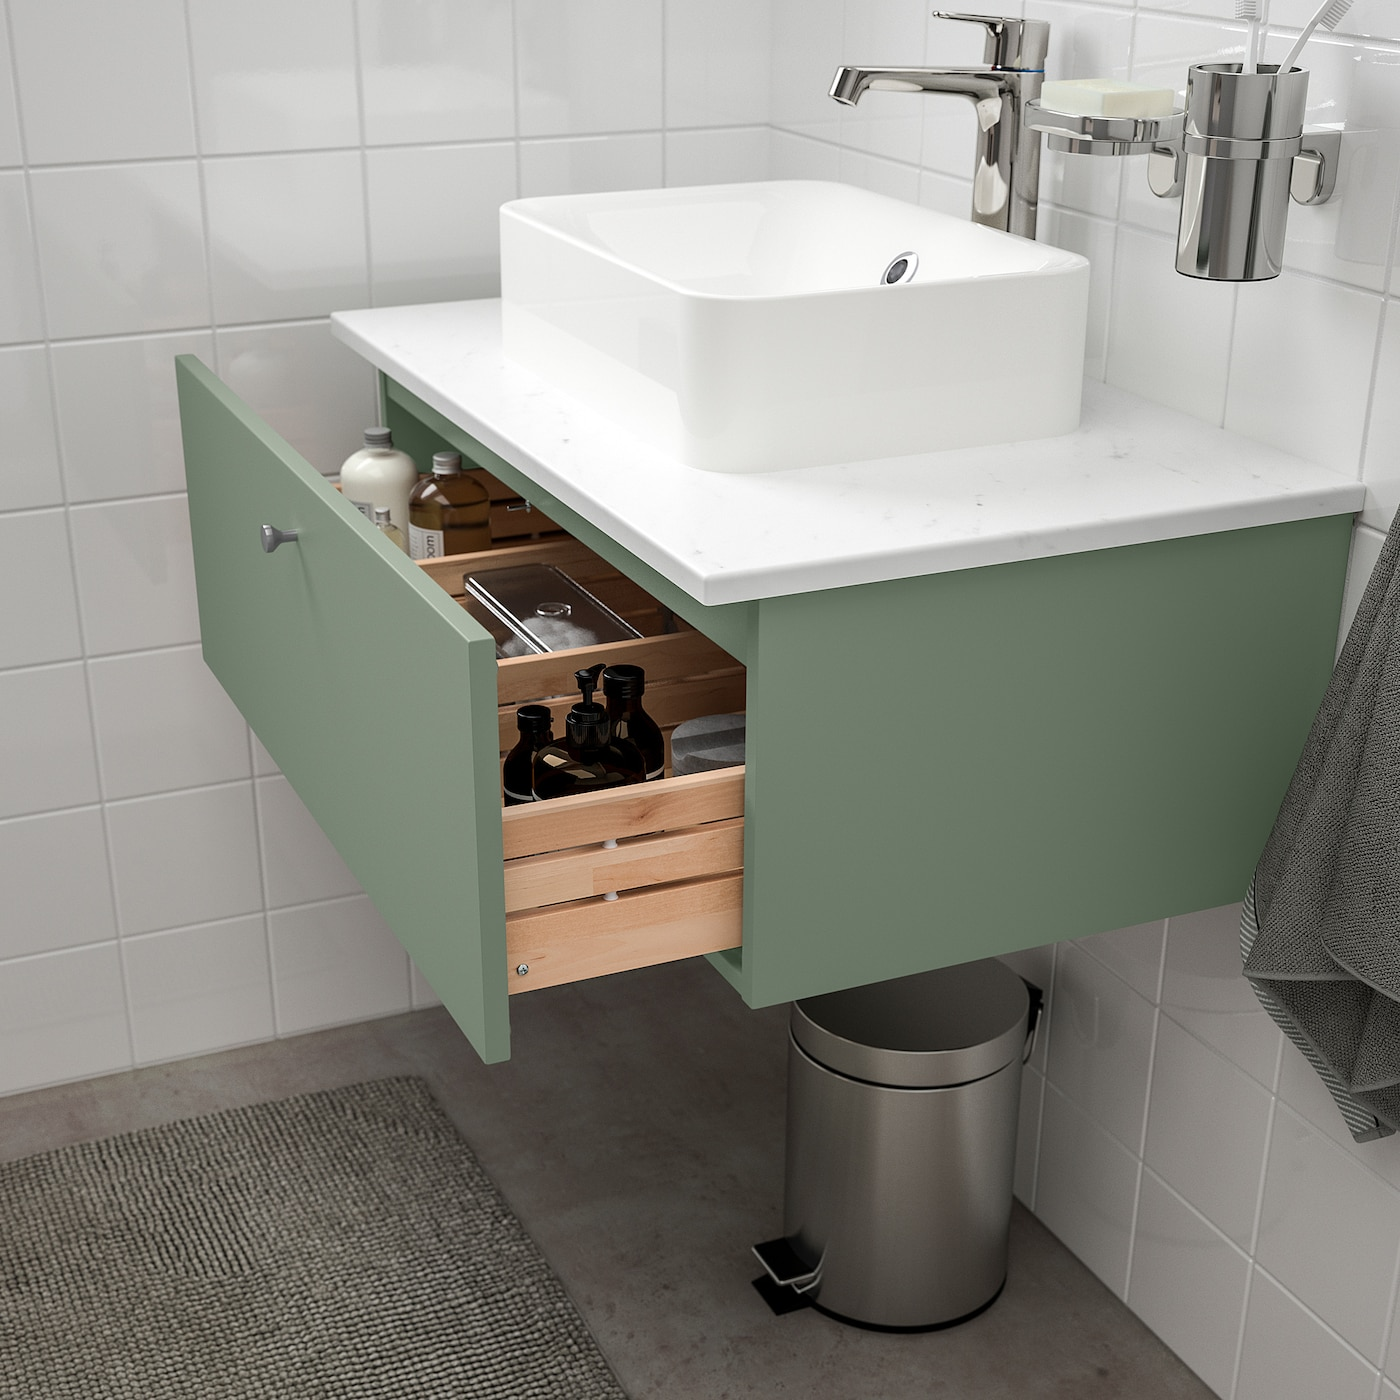 Godmorgon Bath Vanity With 1 Drawer Gillburen Gray Green 311 2x181 2x113 8 80x47x29 Cm Ikea